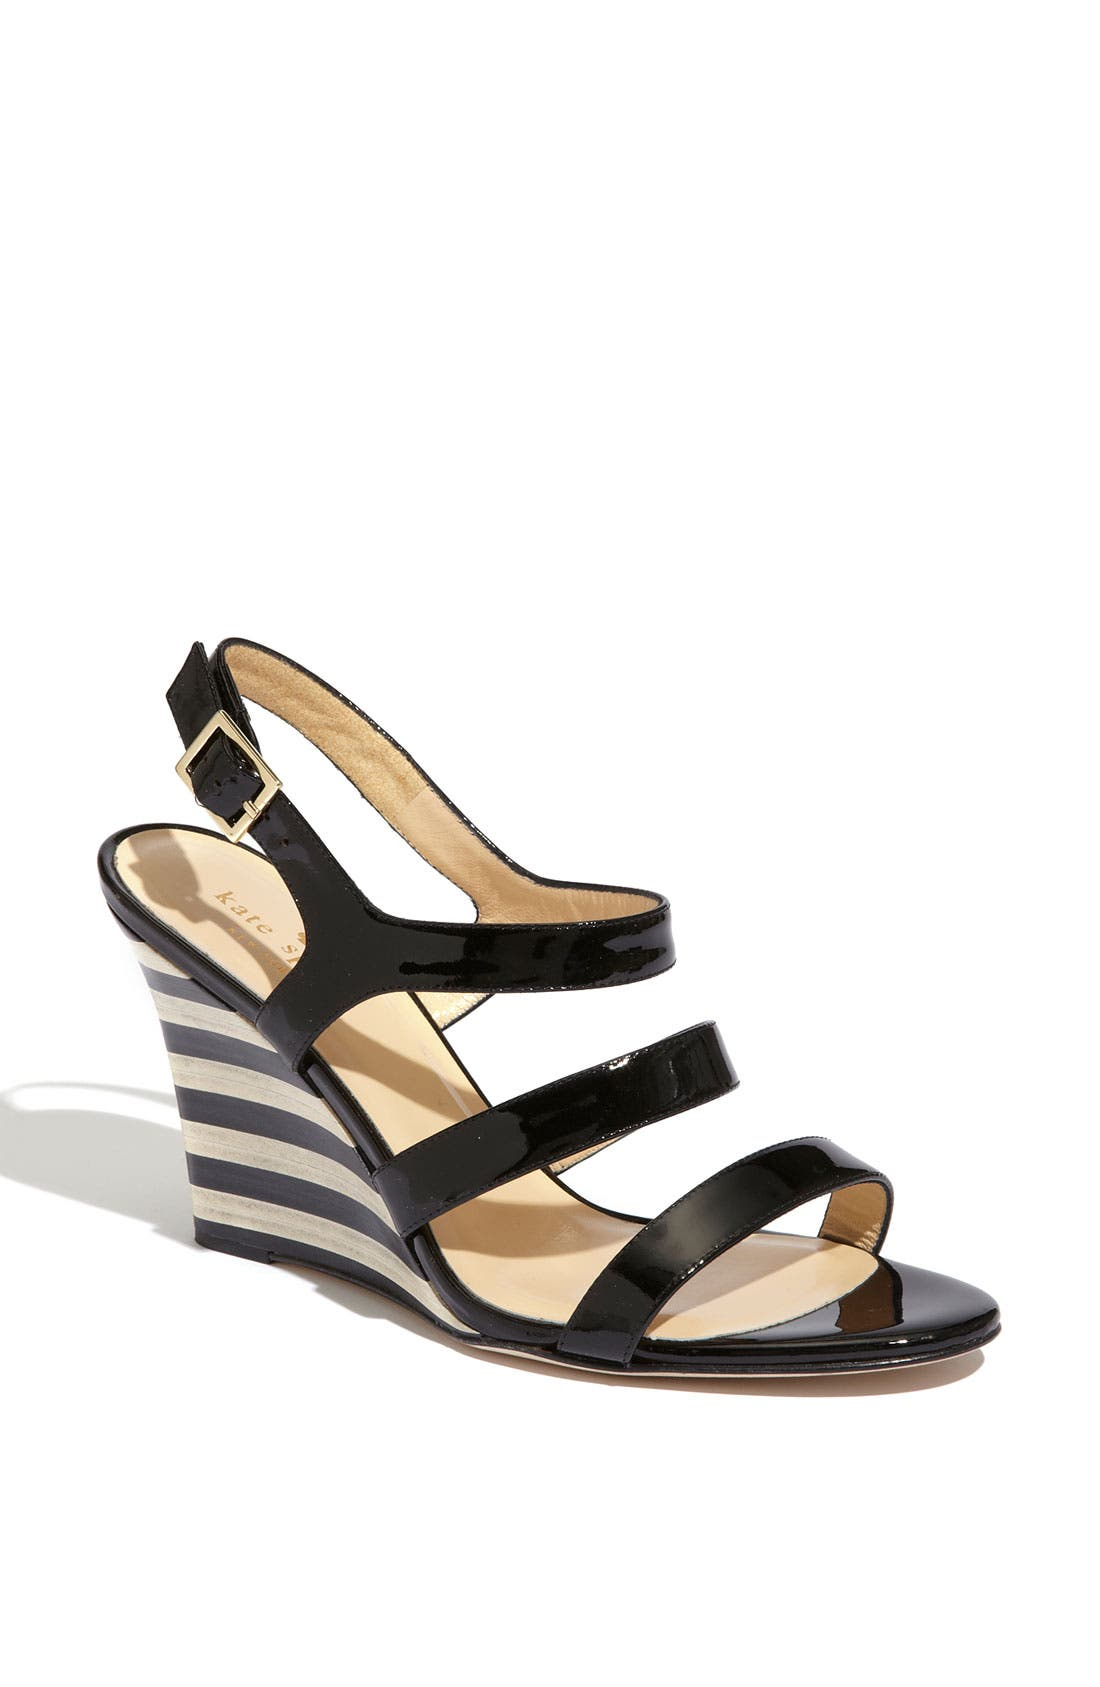 Alternate Image 1 Selected - kate spade new york 'cindy' wedge